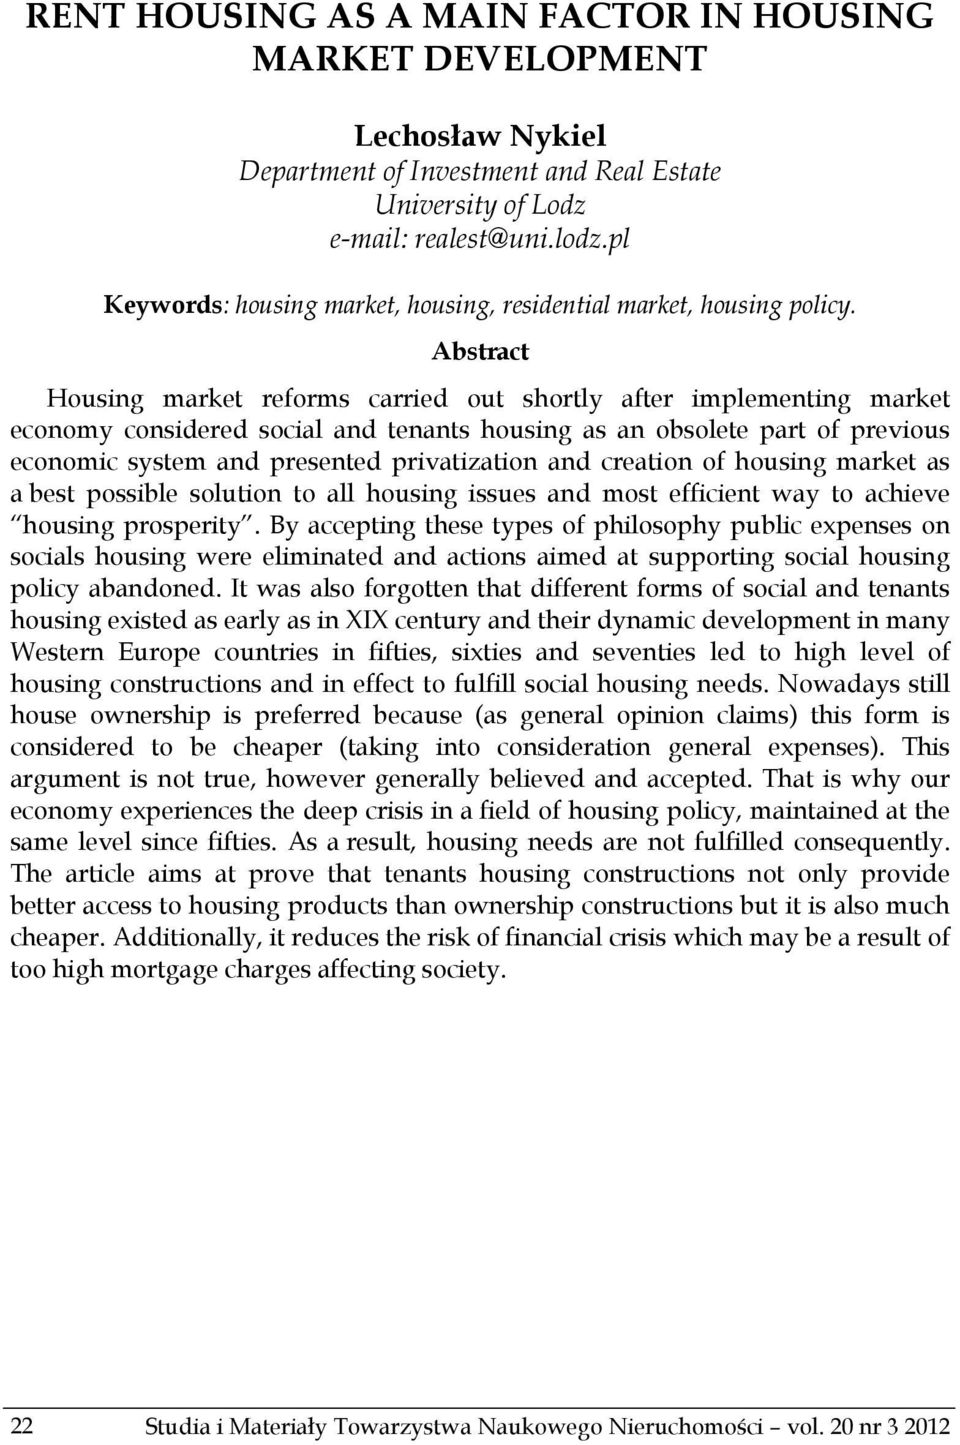 Abstract Housing market reforms carried out shortly after implementing market economy considered social and tenants housing as an obsolete part of previous economic system and presented privatization